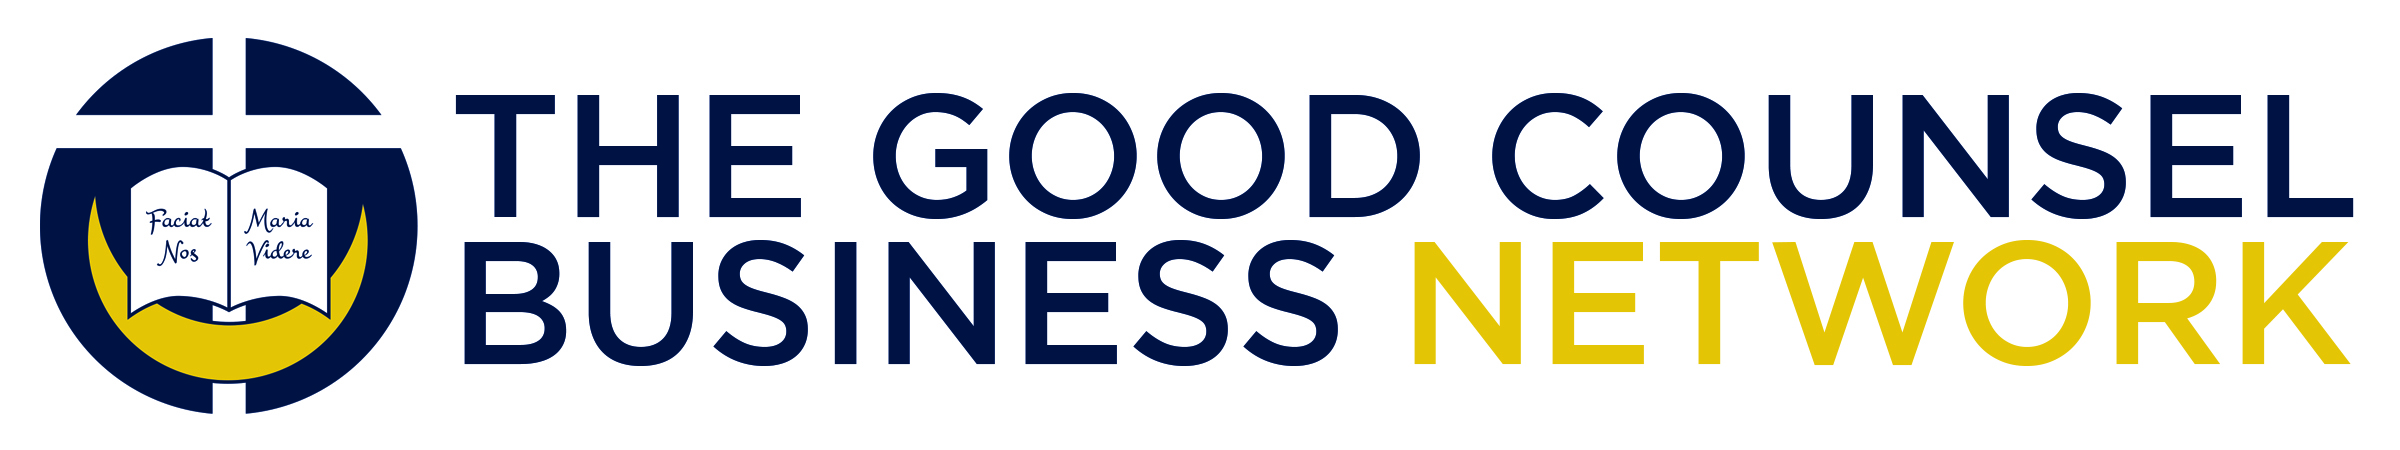 Good Counsel Business Network logo